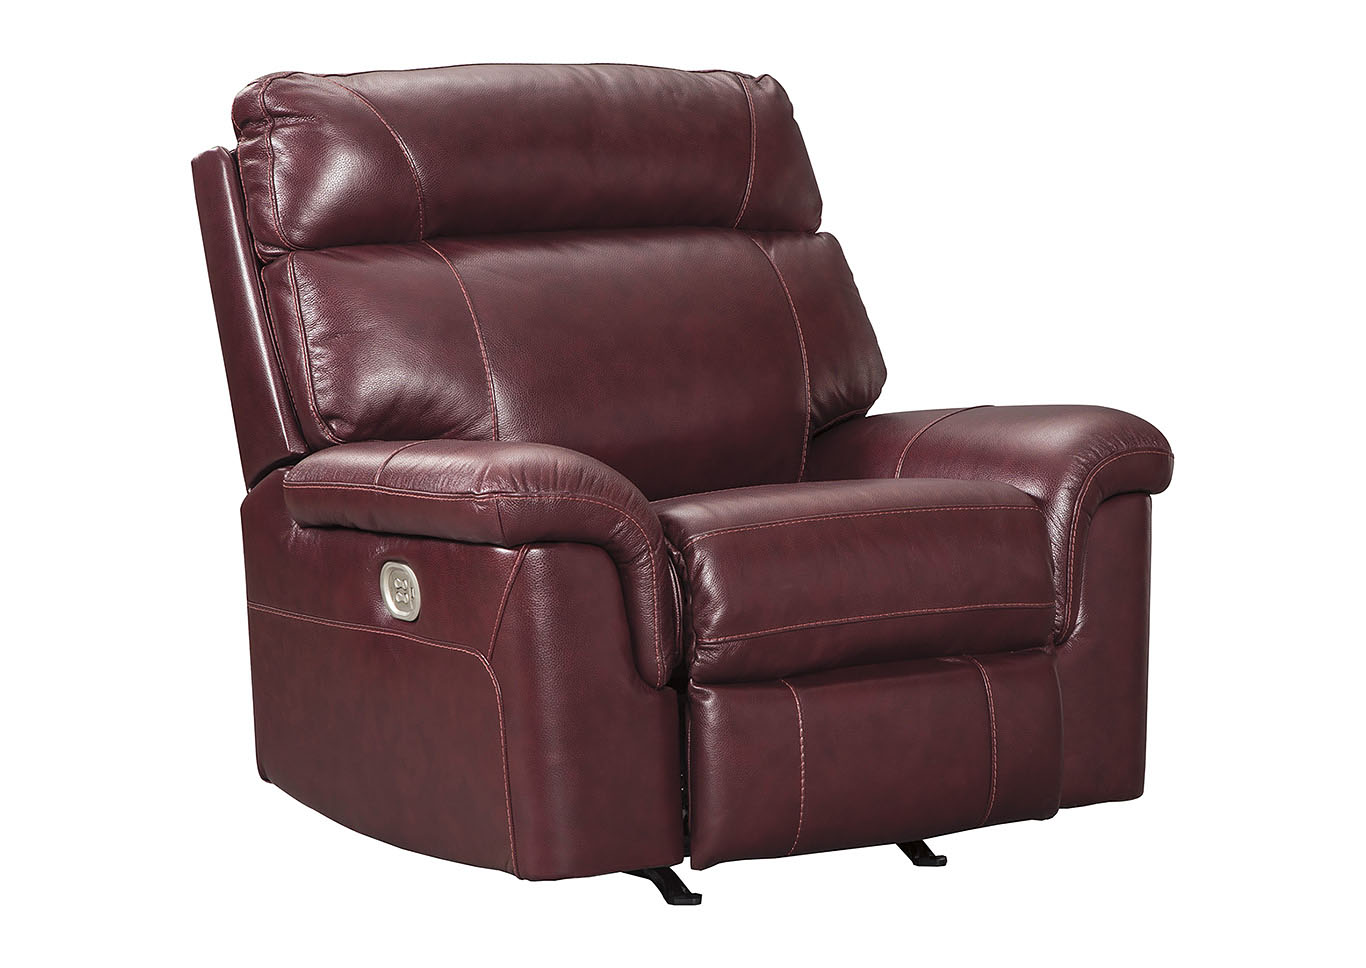 Moran Recliners Chairs Moran S Furniture Store Jamestown Ny Power Recliner W